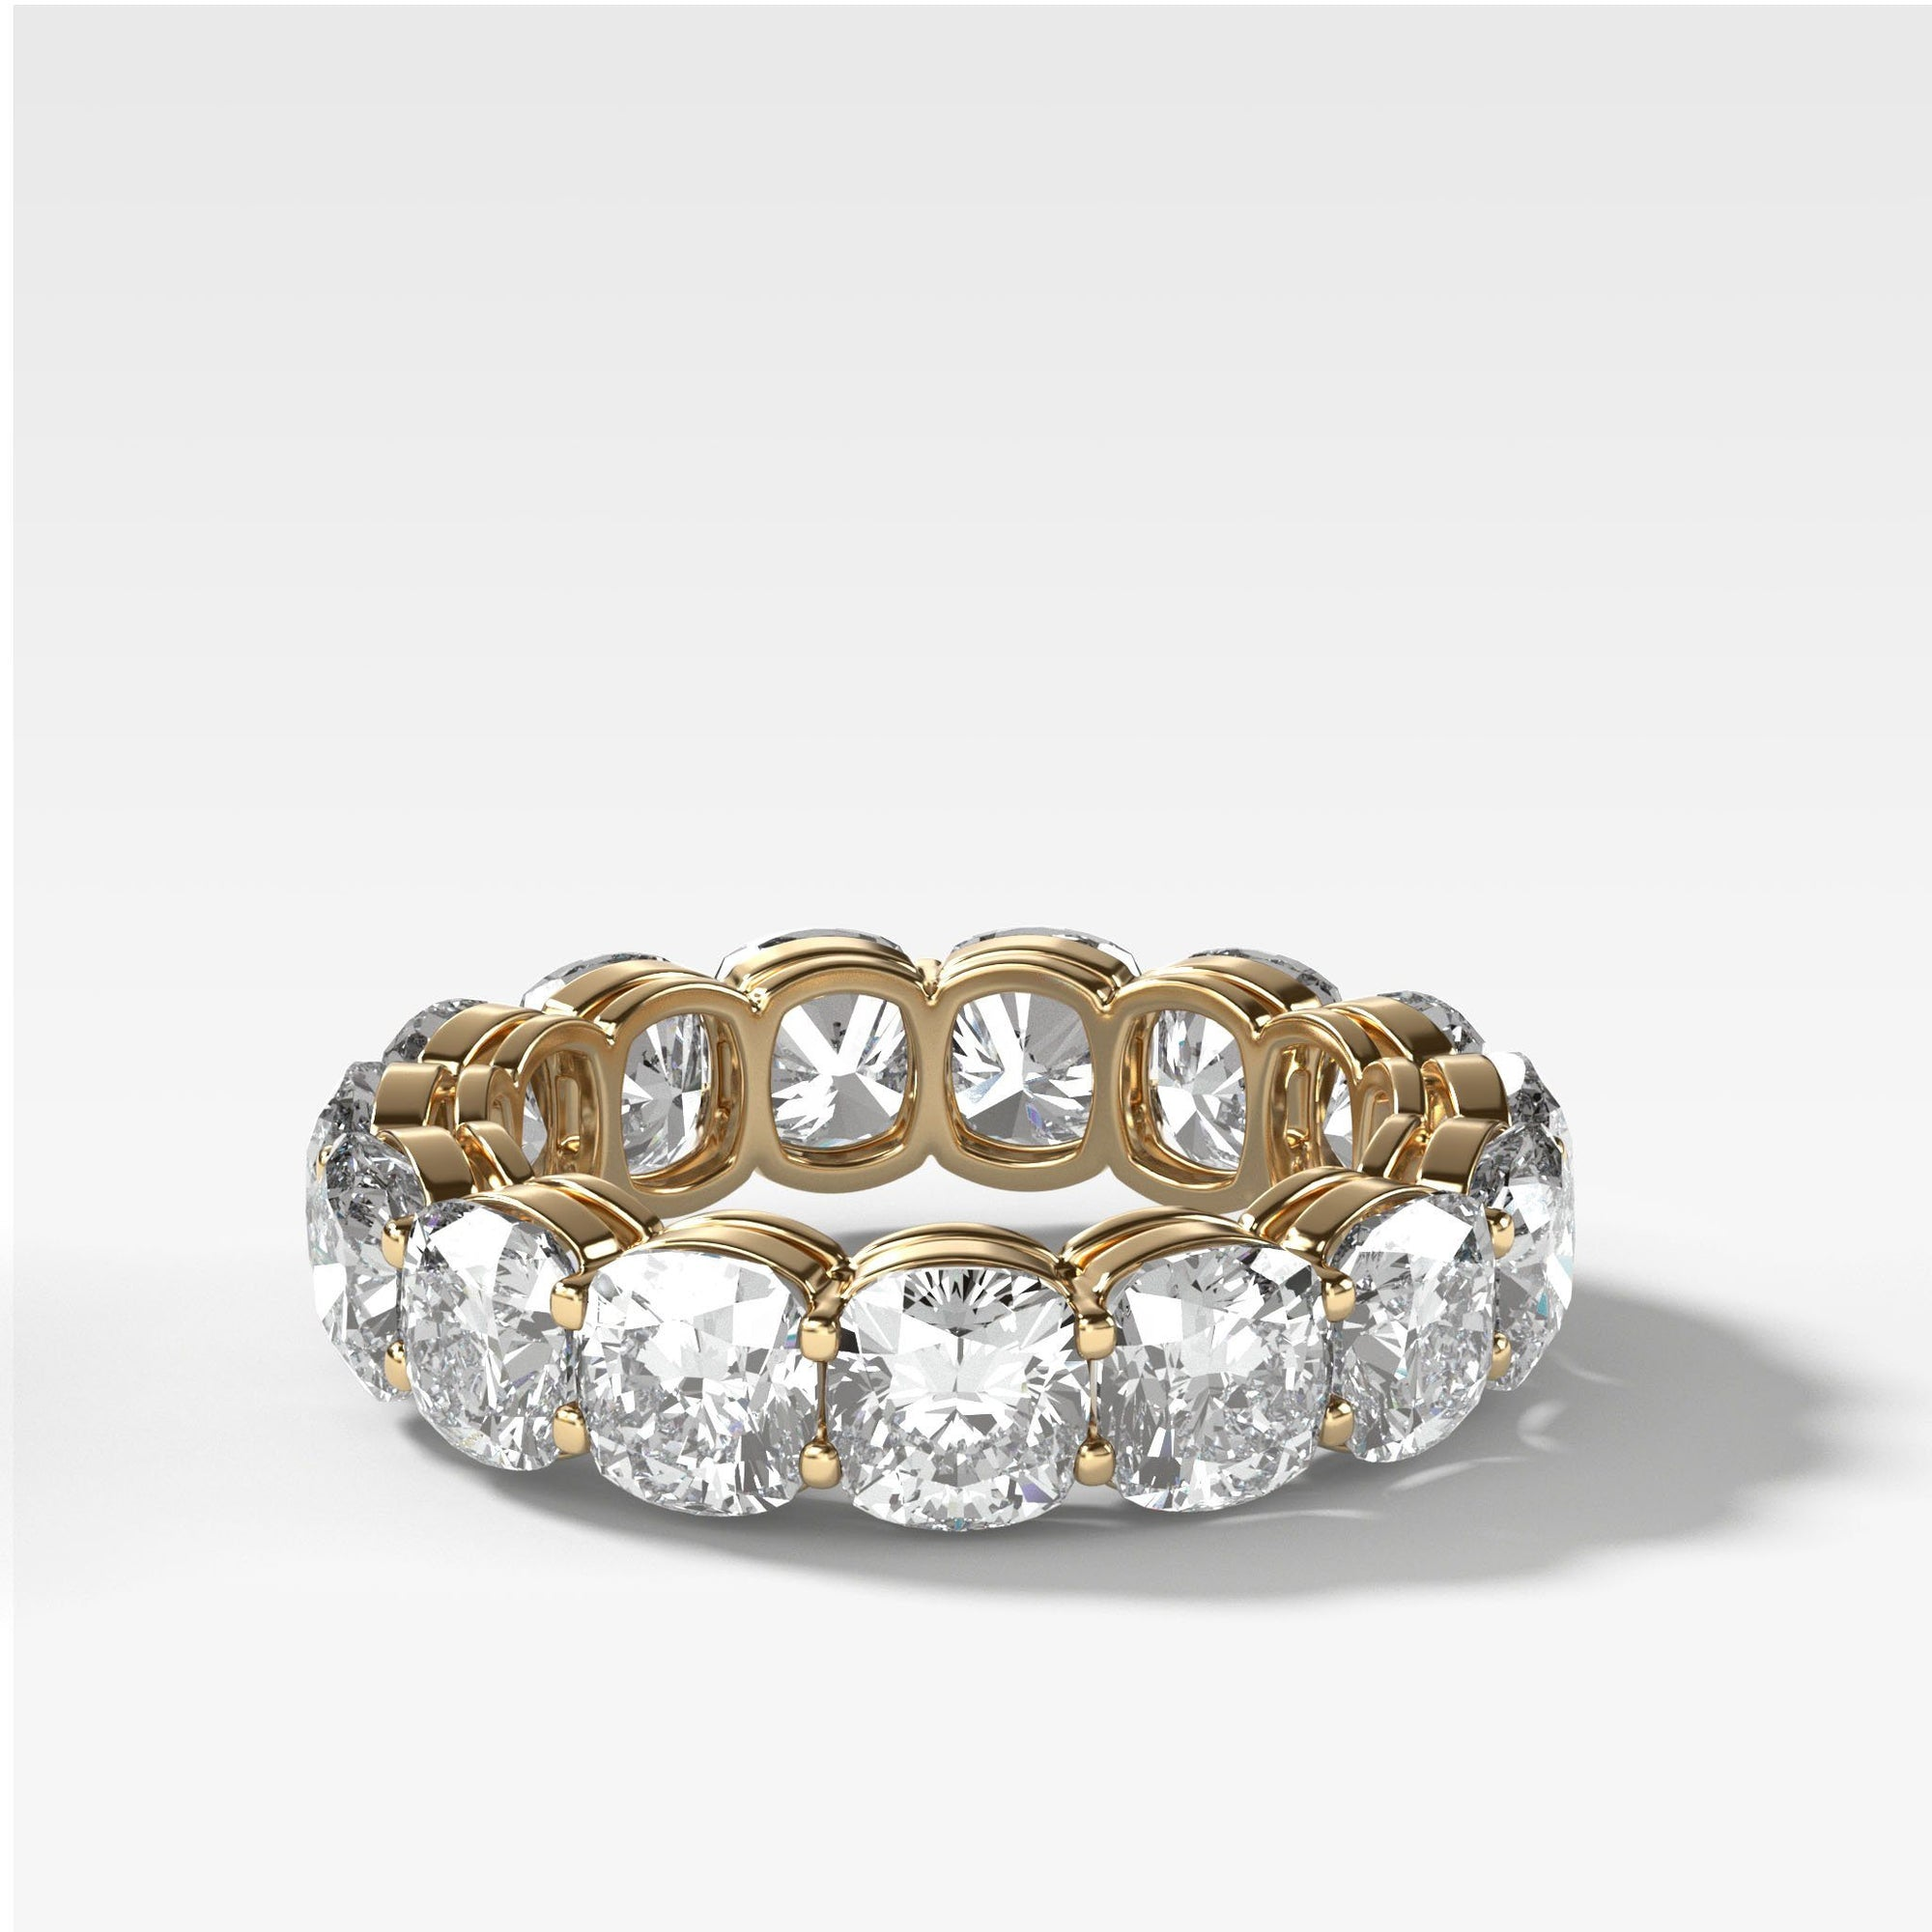 Cushion Cut Constellation Eternity Band in Yellow Gold by Good Stone